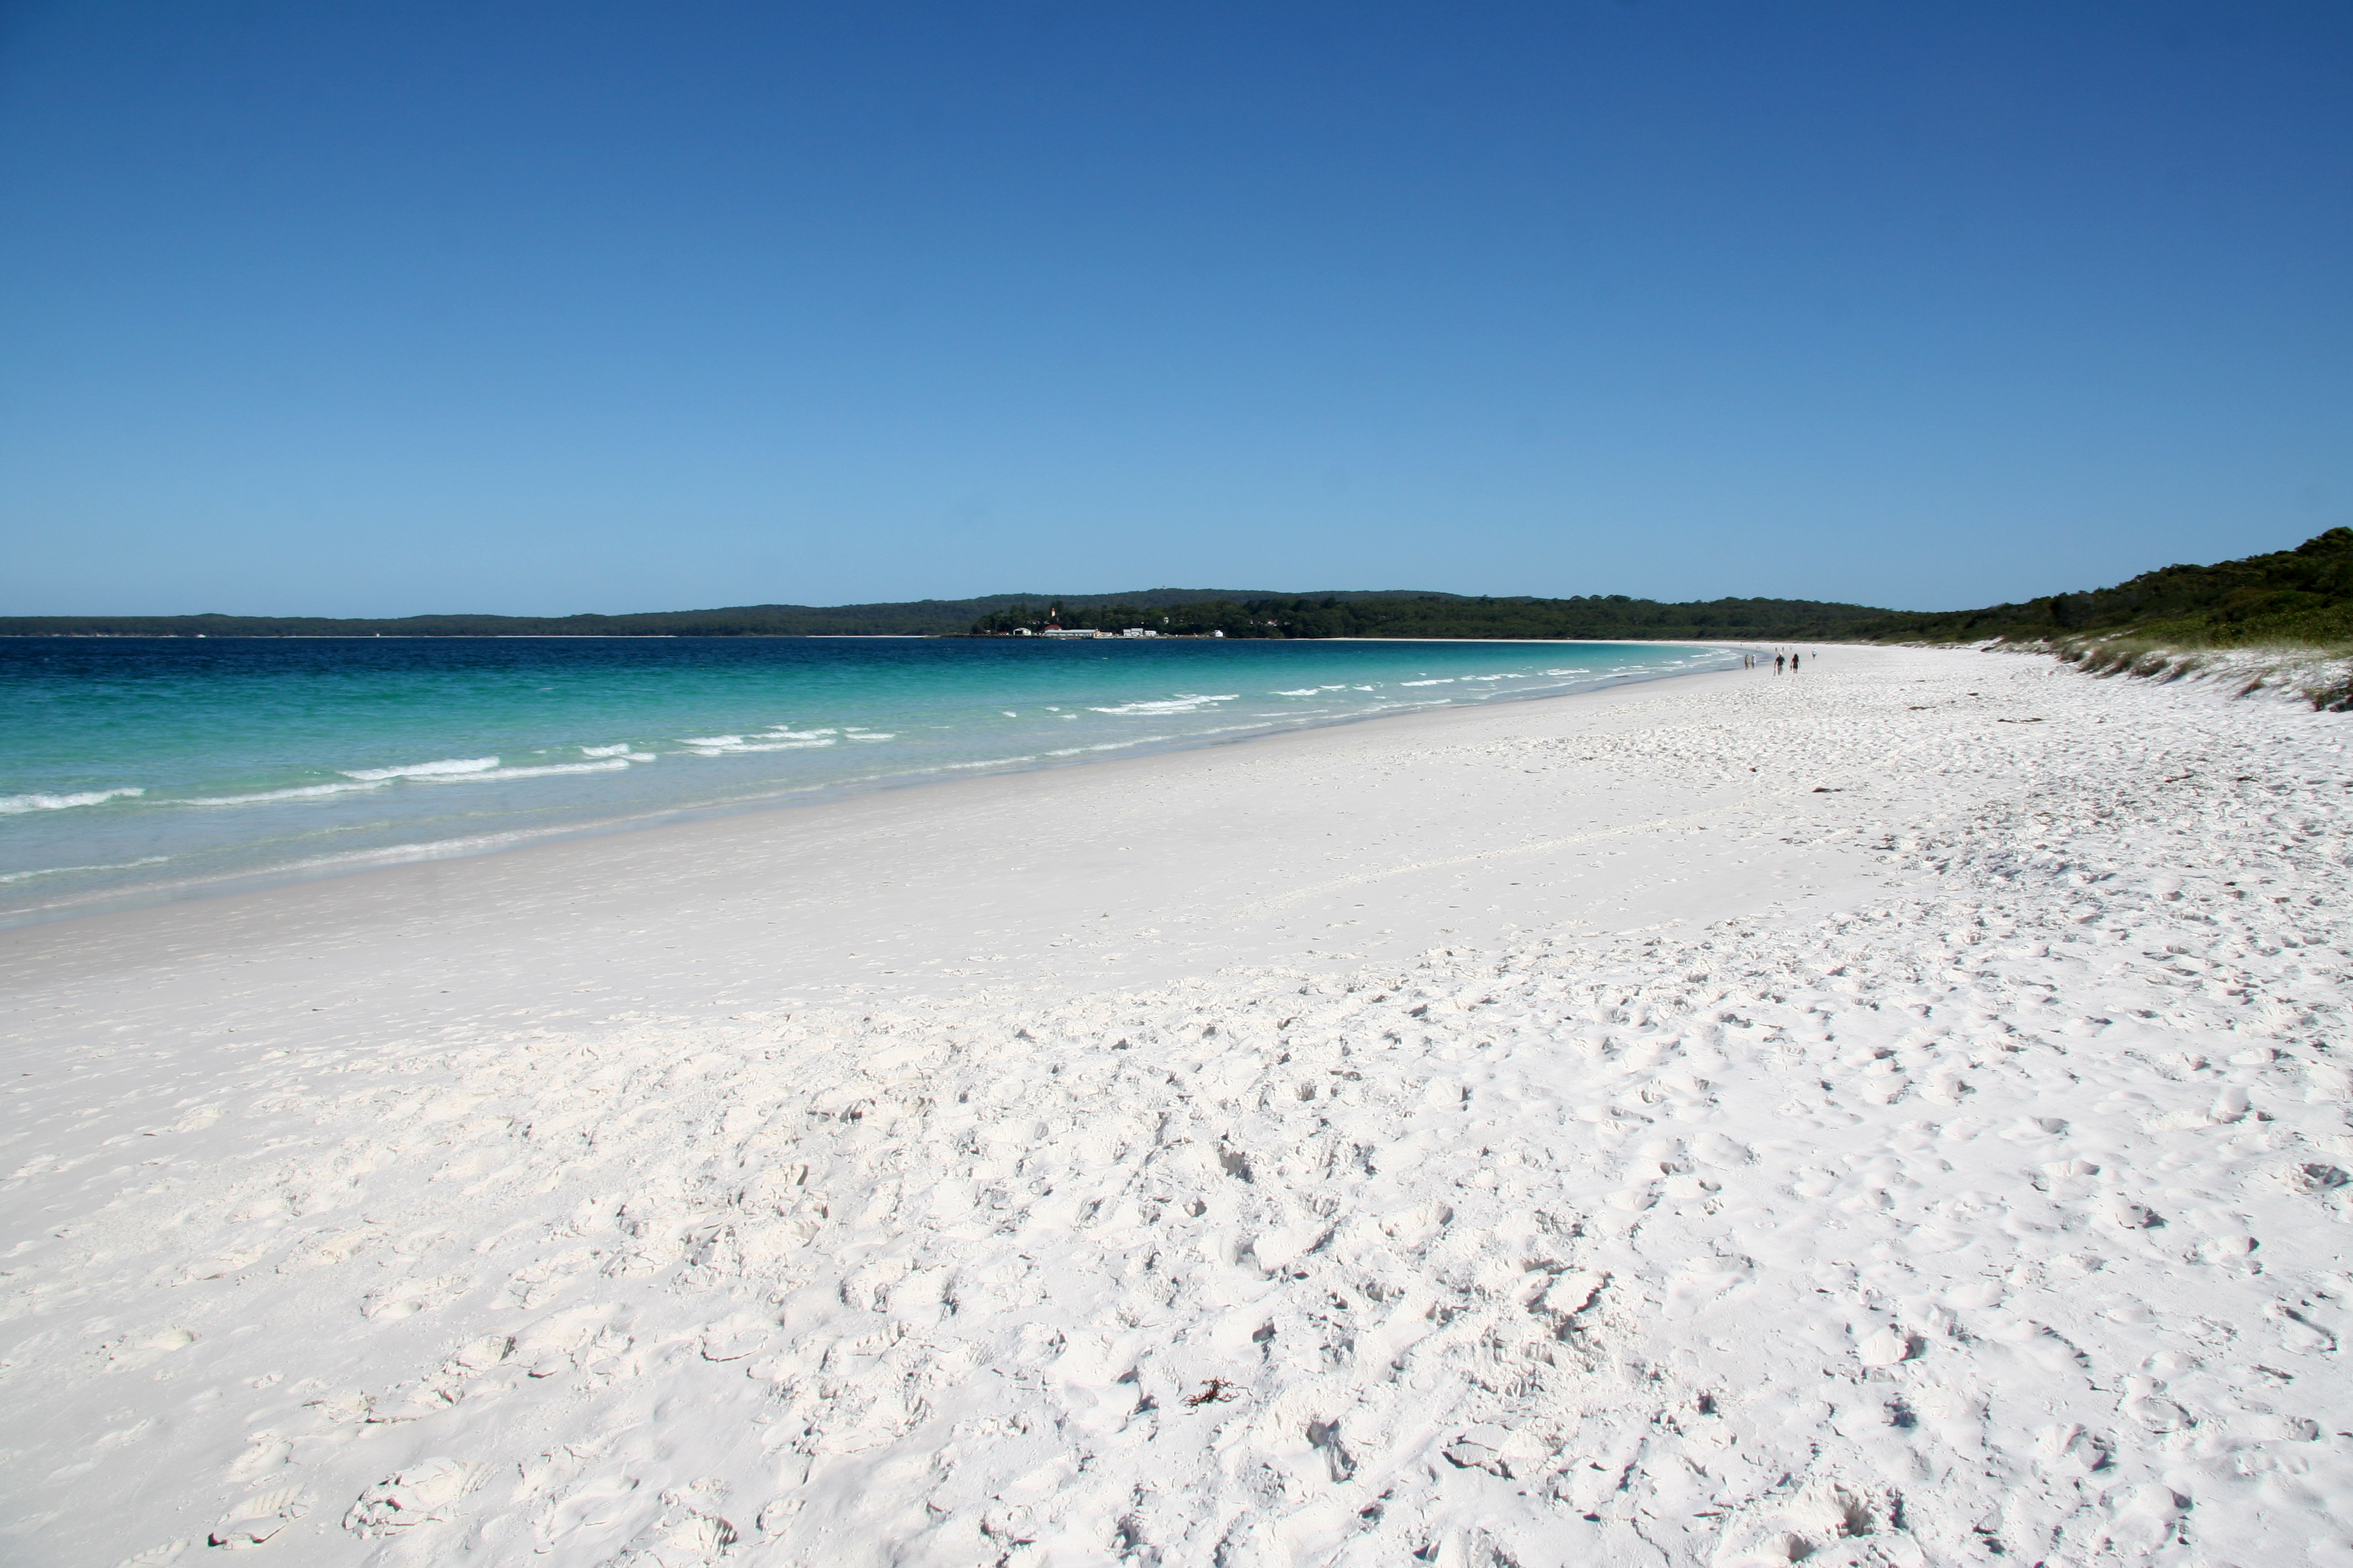 Hyams Beach By Dave Naithani (Own work) [CC-BY-SA-3.0 (https://creativecommons.org/licenses/by-sa/3.0)], via Wikimedia Commons